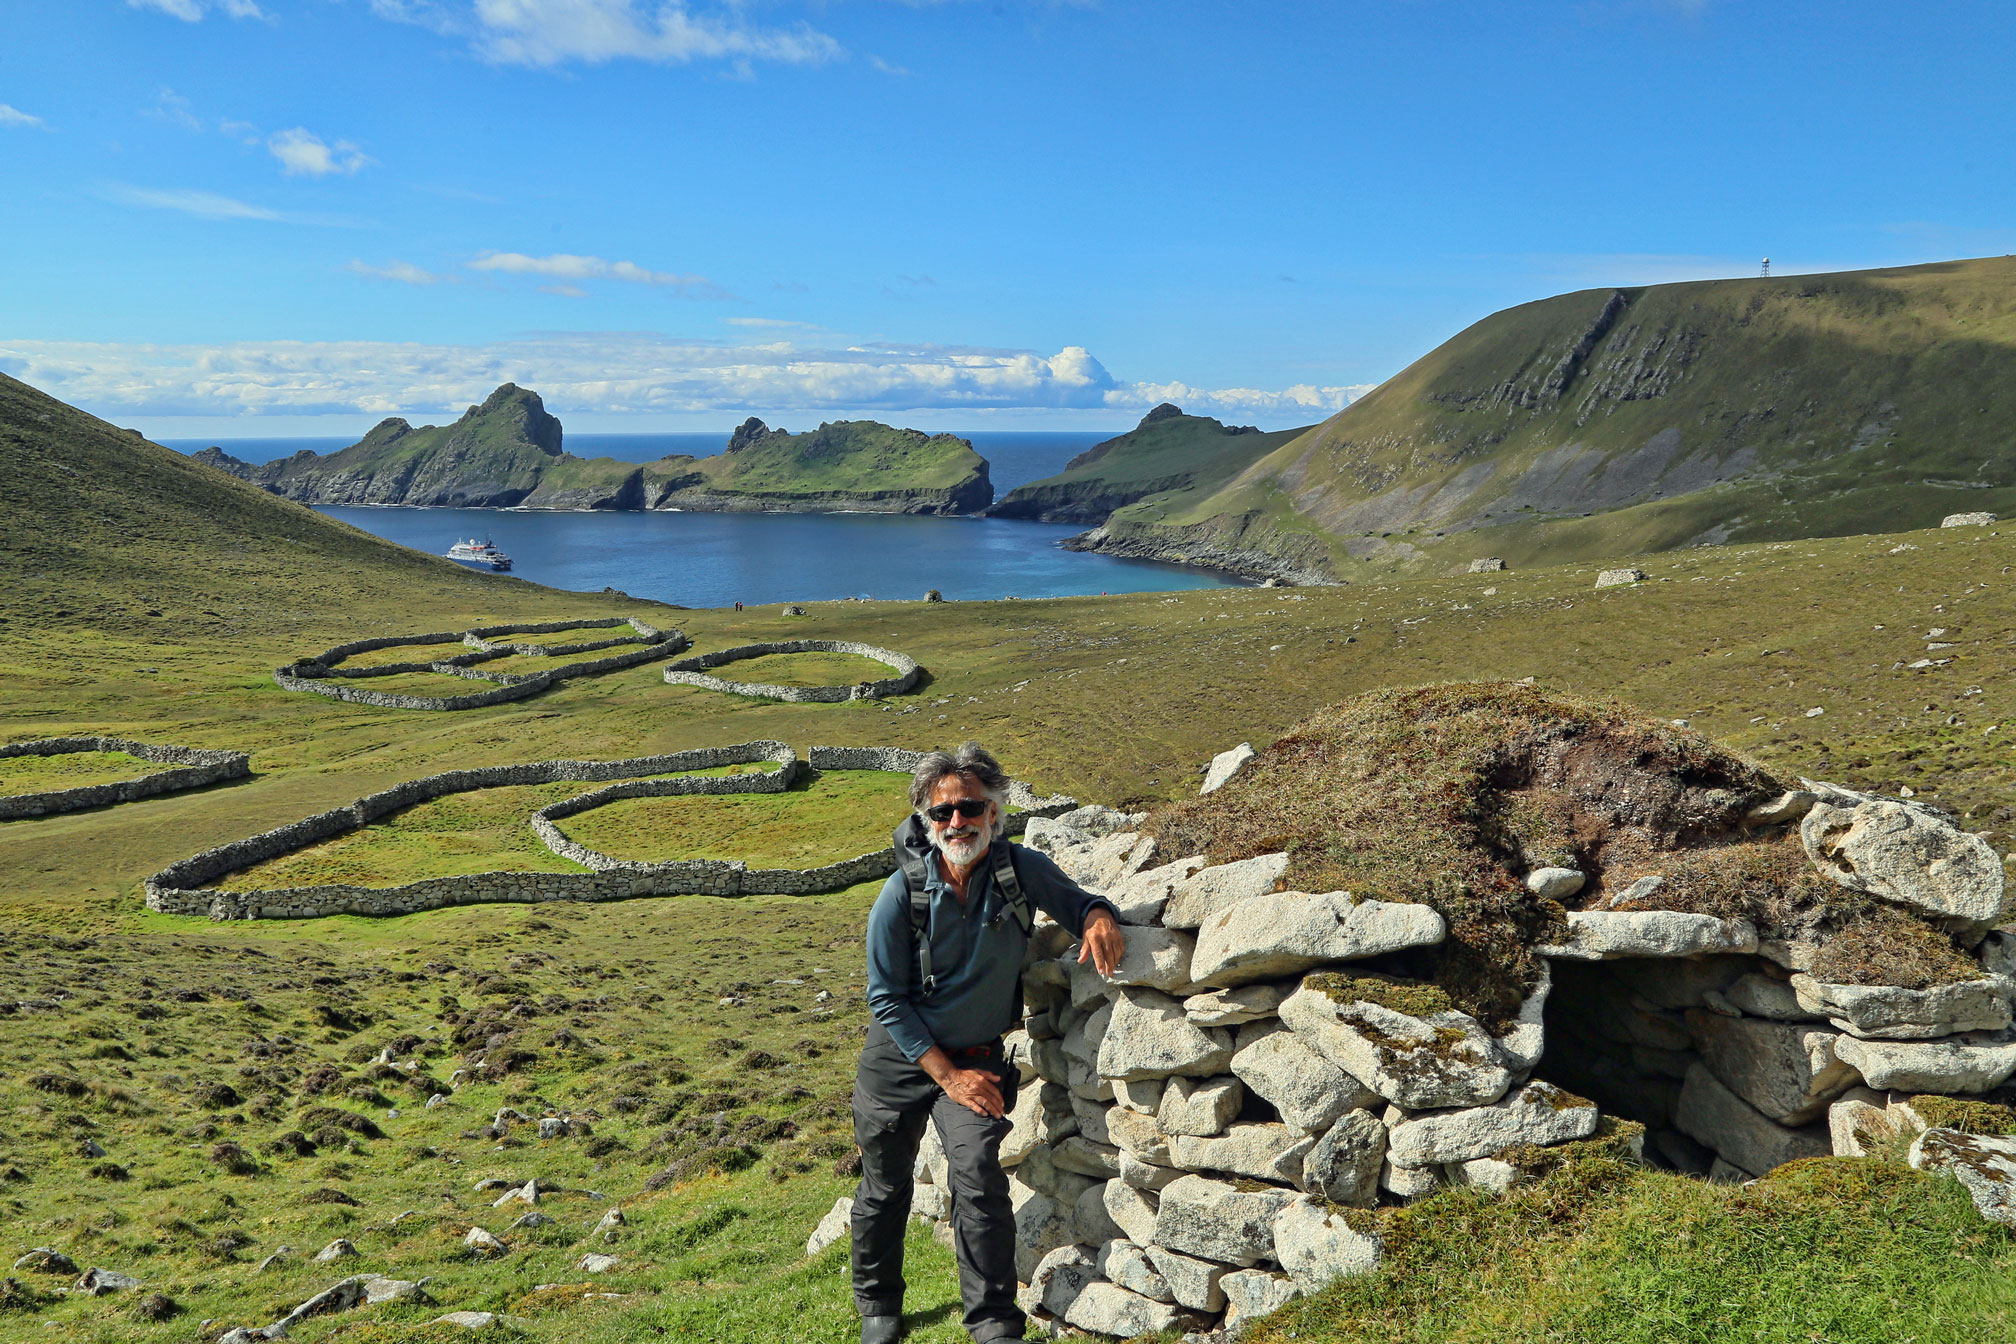 Two thousand year old archaeology at St. Kilda.